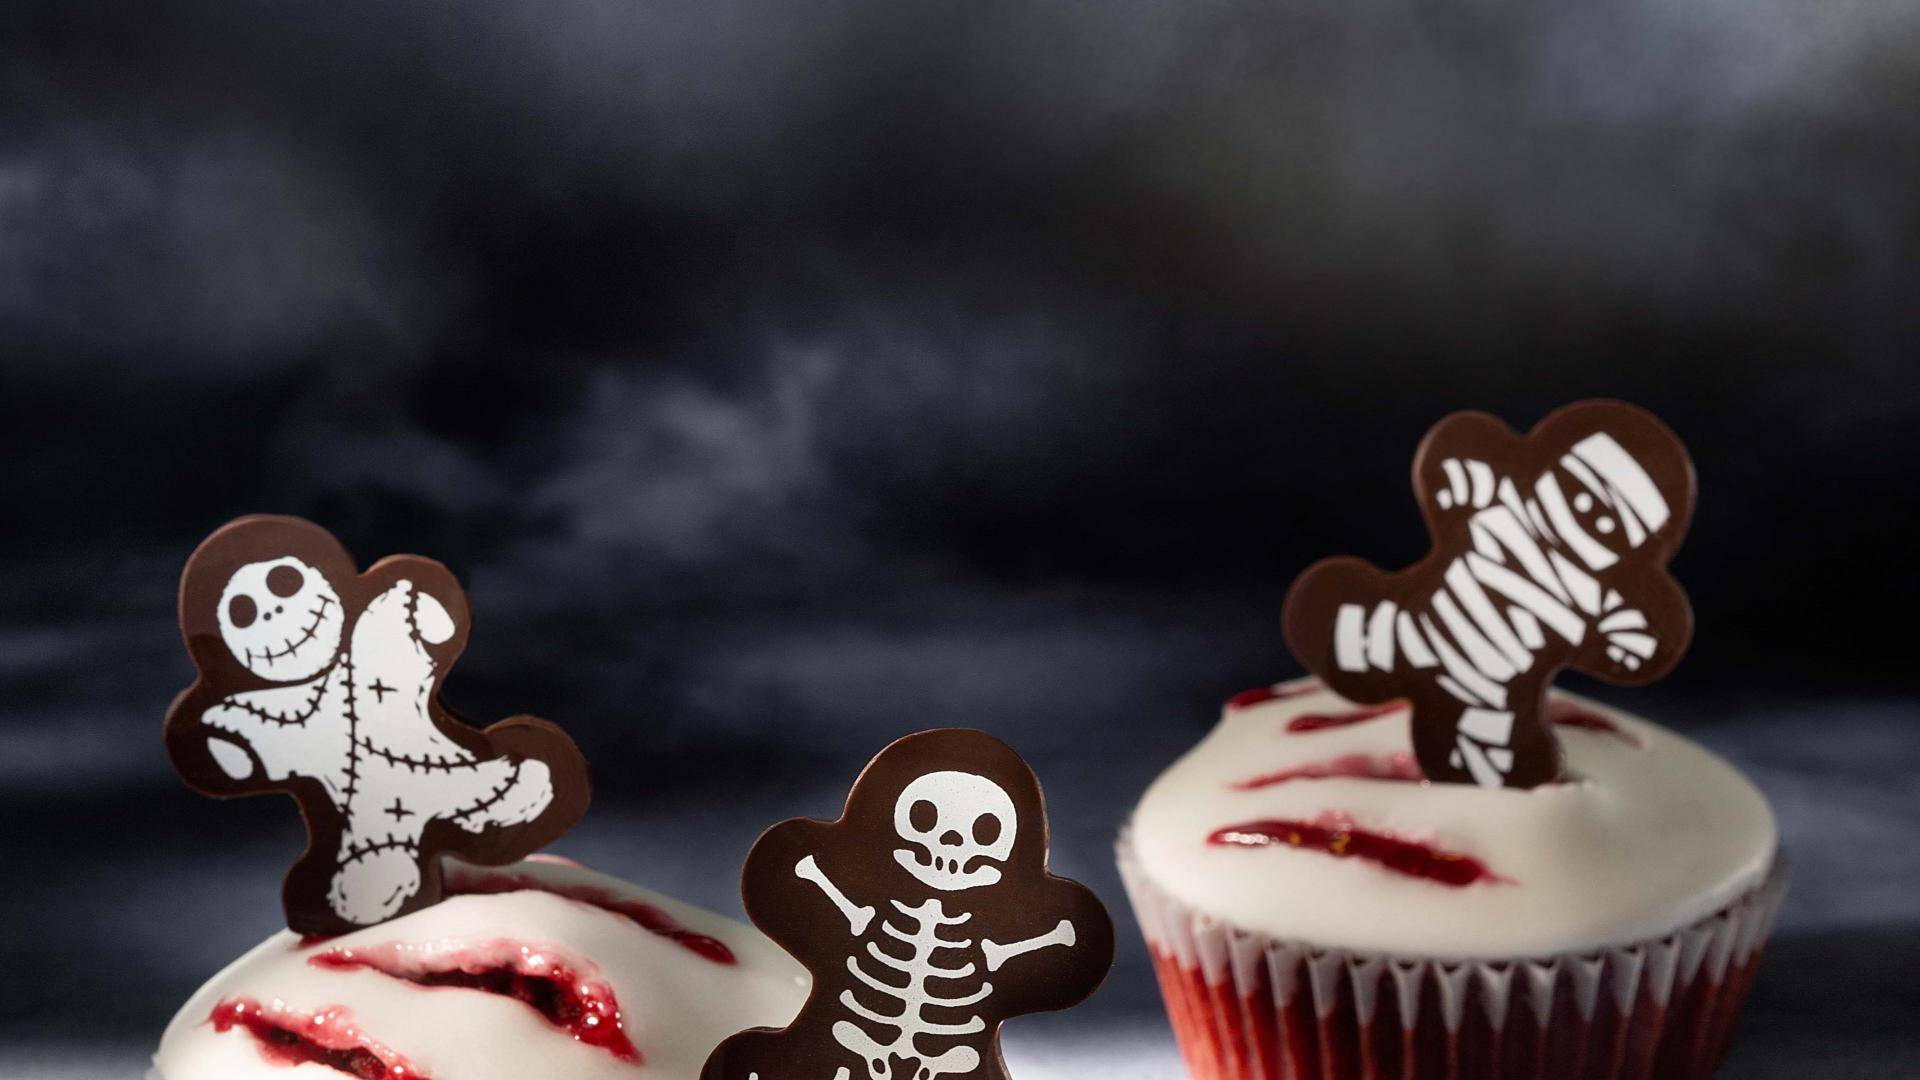 Cupcakes with scary chocolate decorations